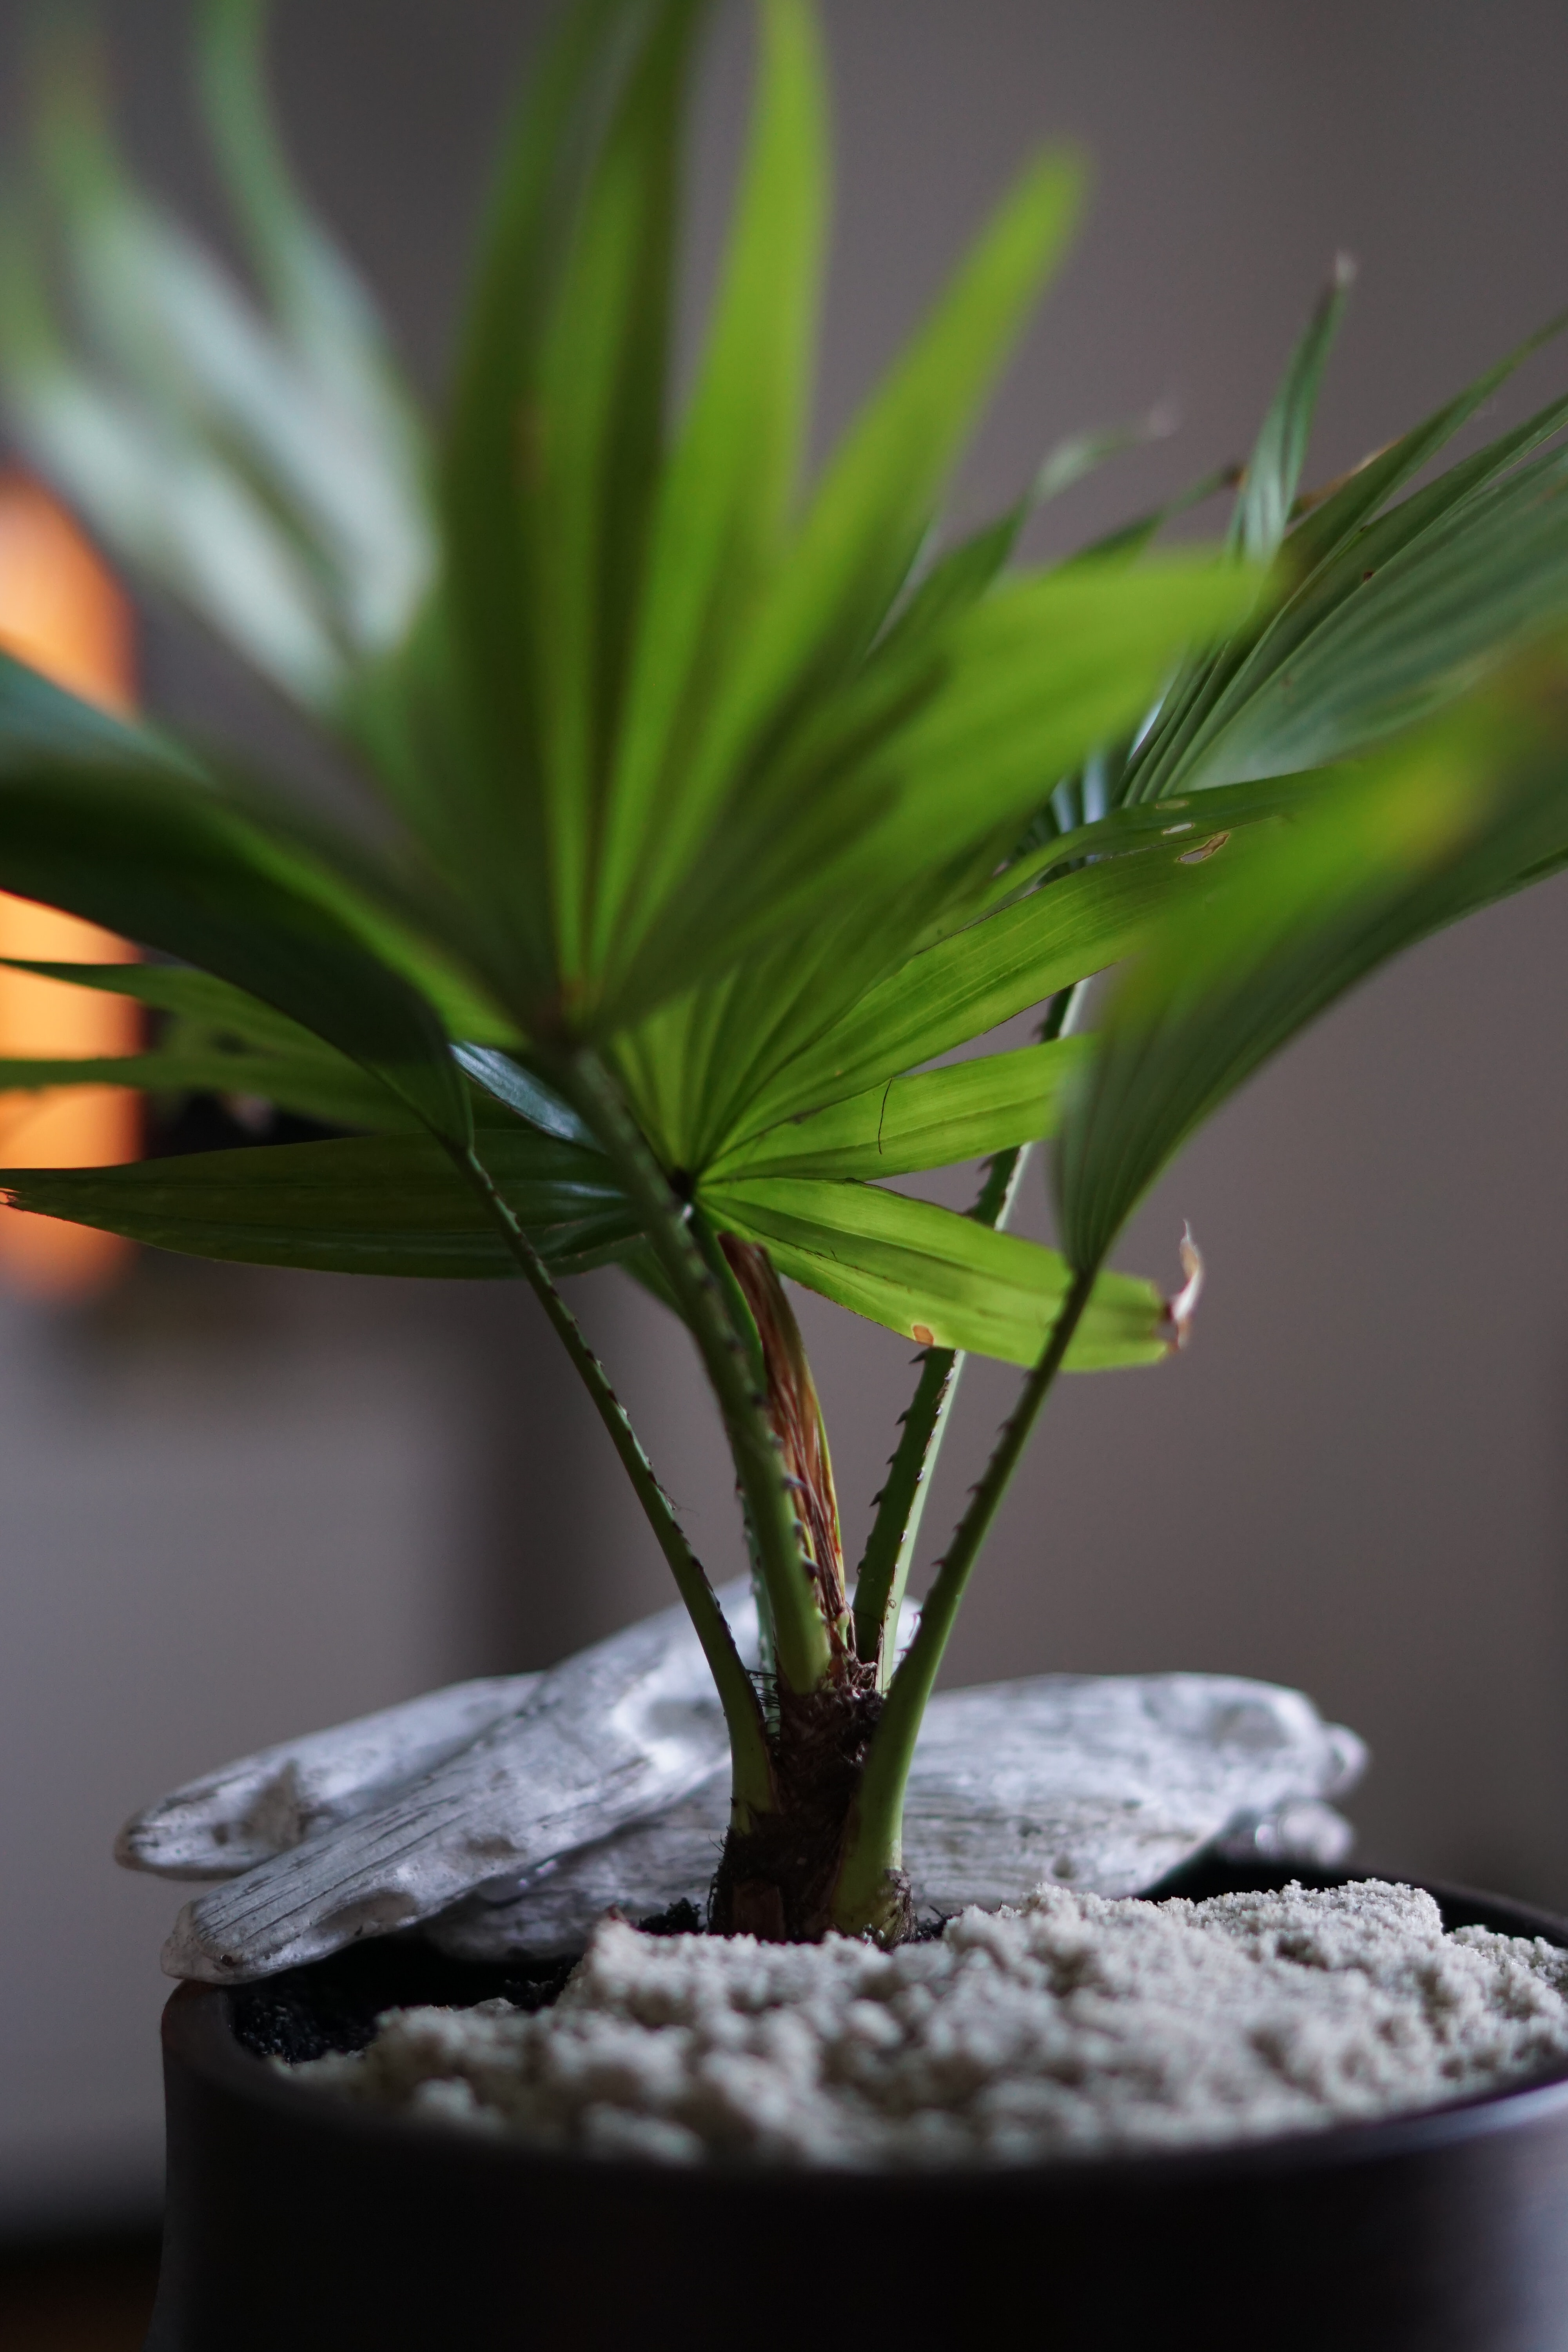 closeup photography of green leaf plant in pot